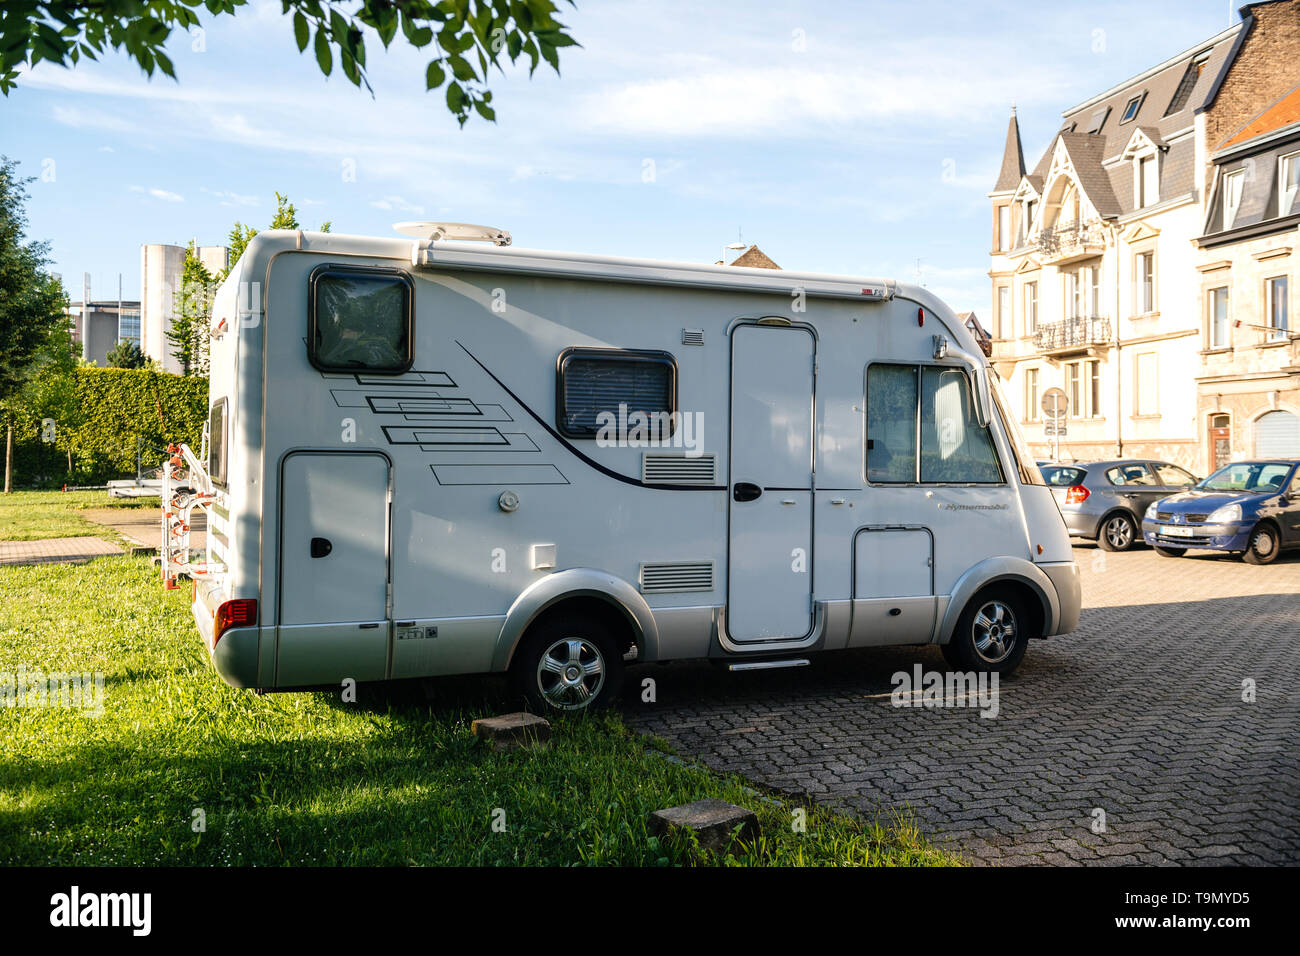 Strasbourg, France - May 19, 2017: Hymermobil RV white van parked on parked space in French city - Stock Image